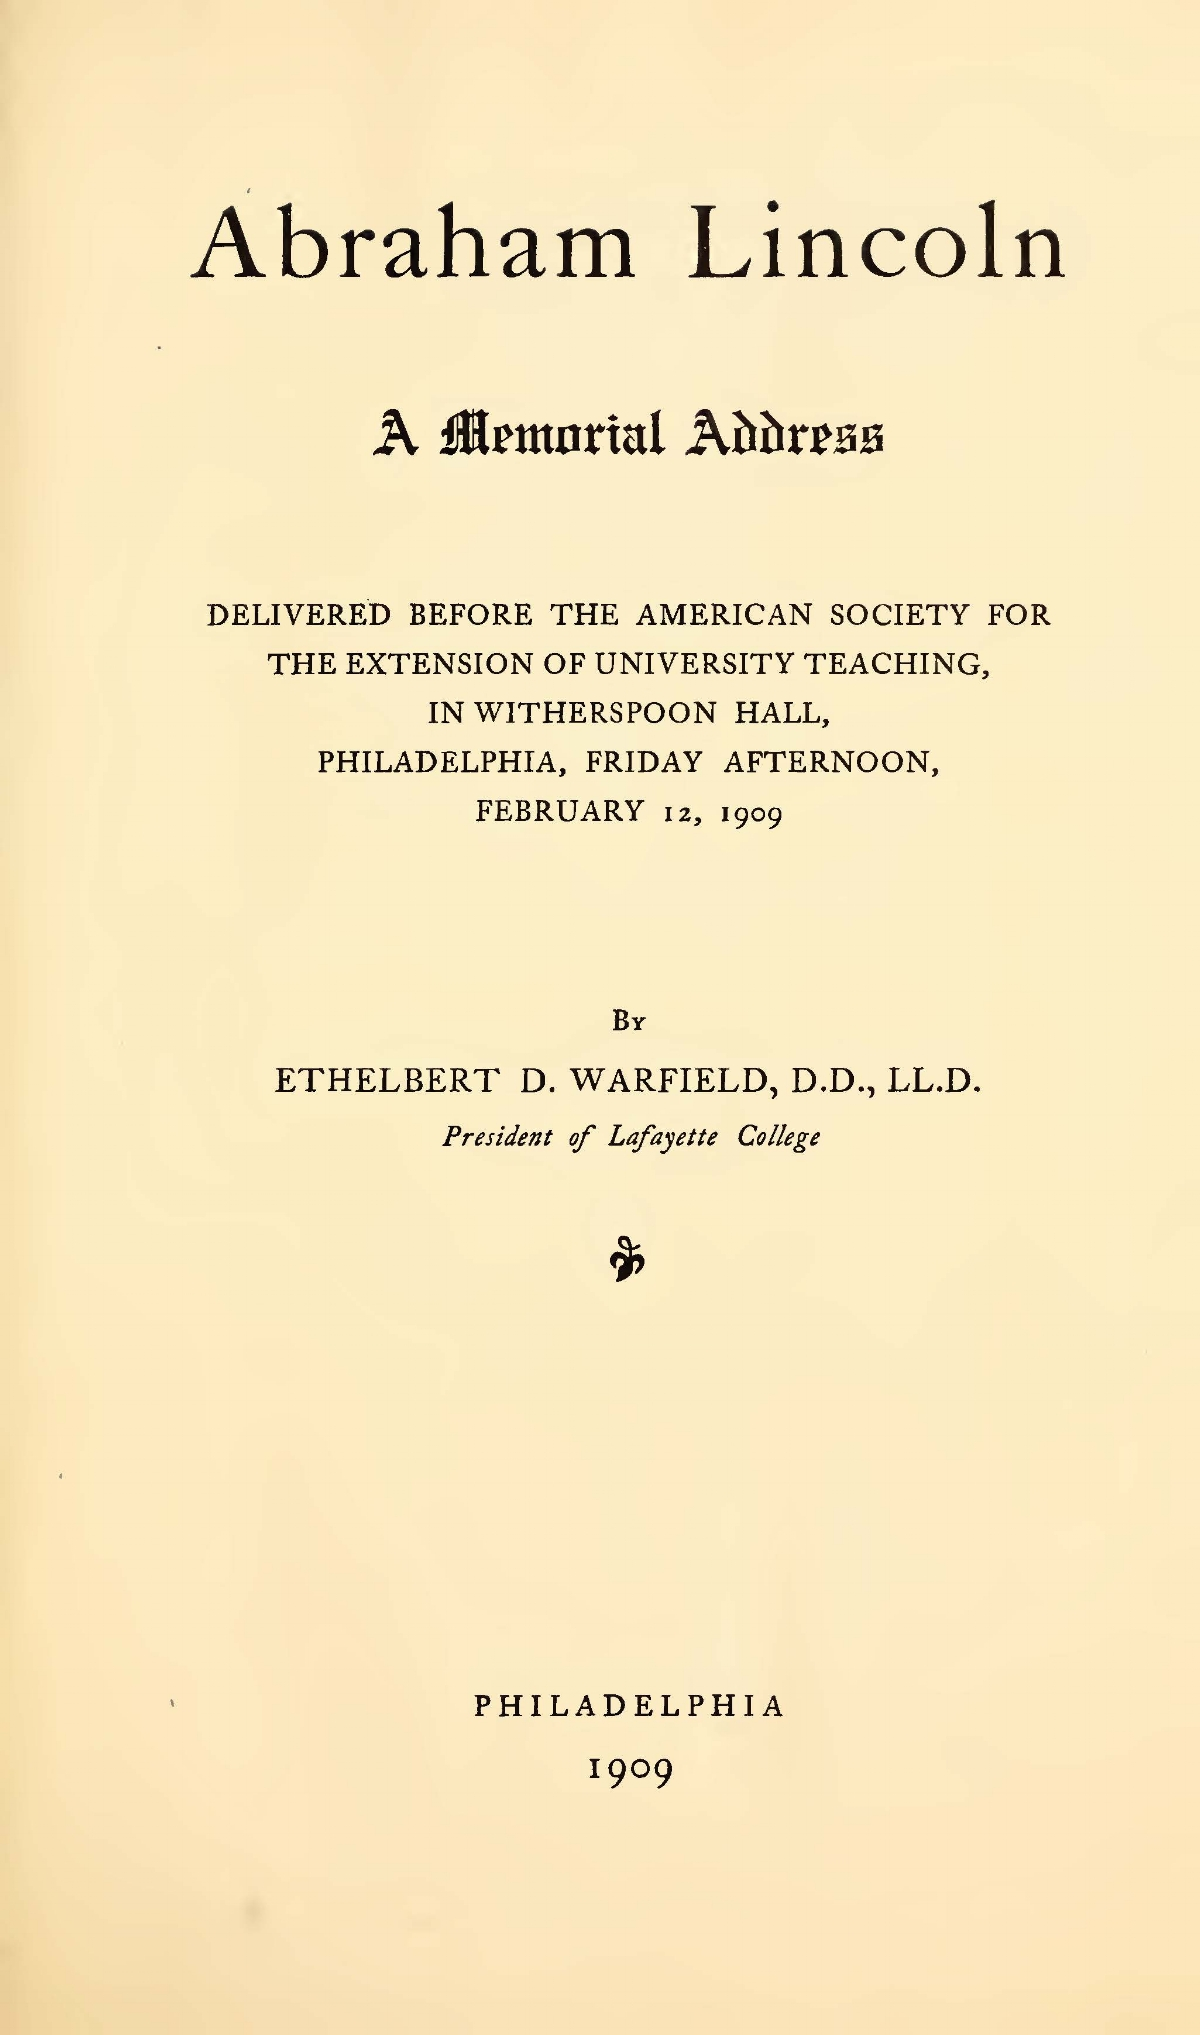 Warfield, Ethelbert Dudley, Abraham Lincoln Title Page.jpg